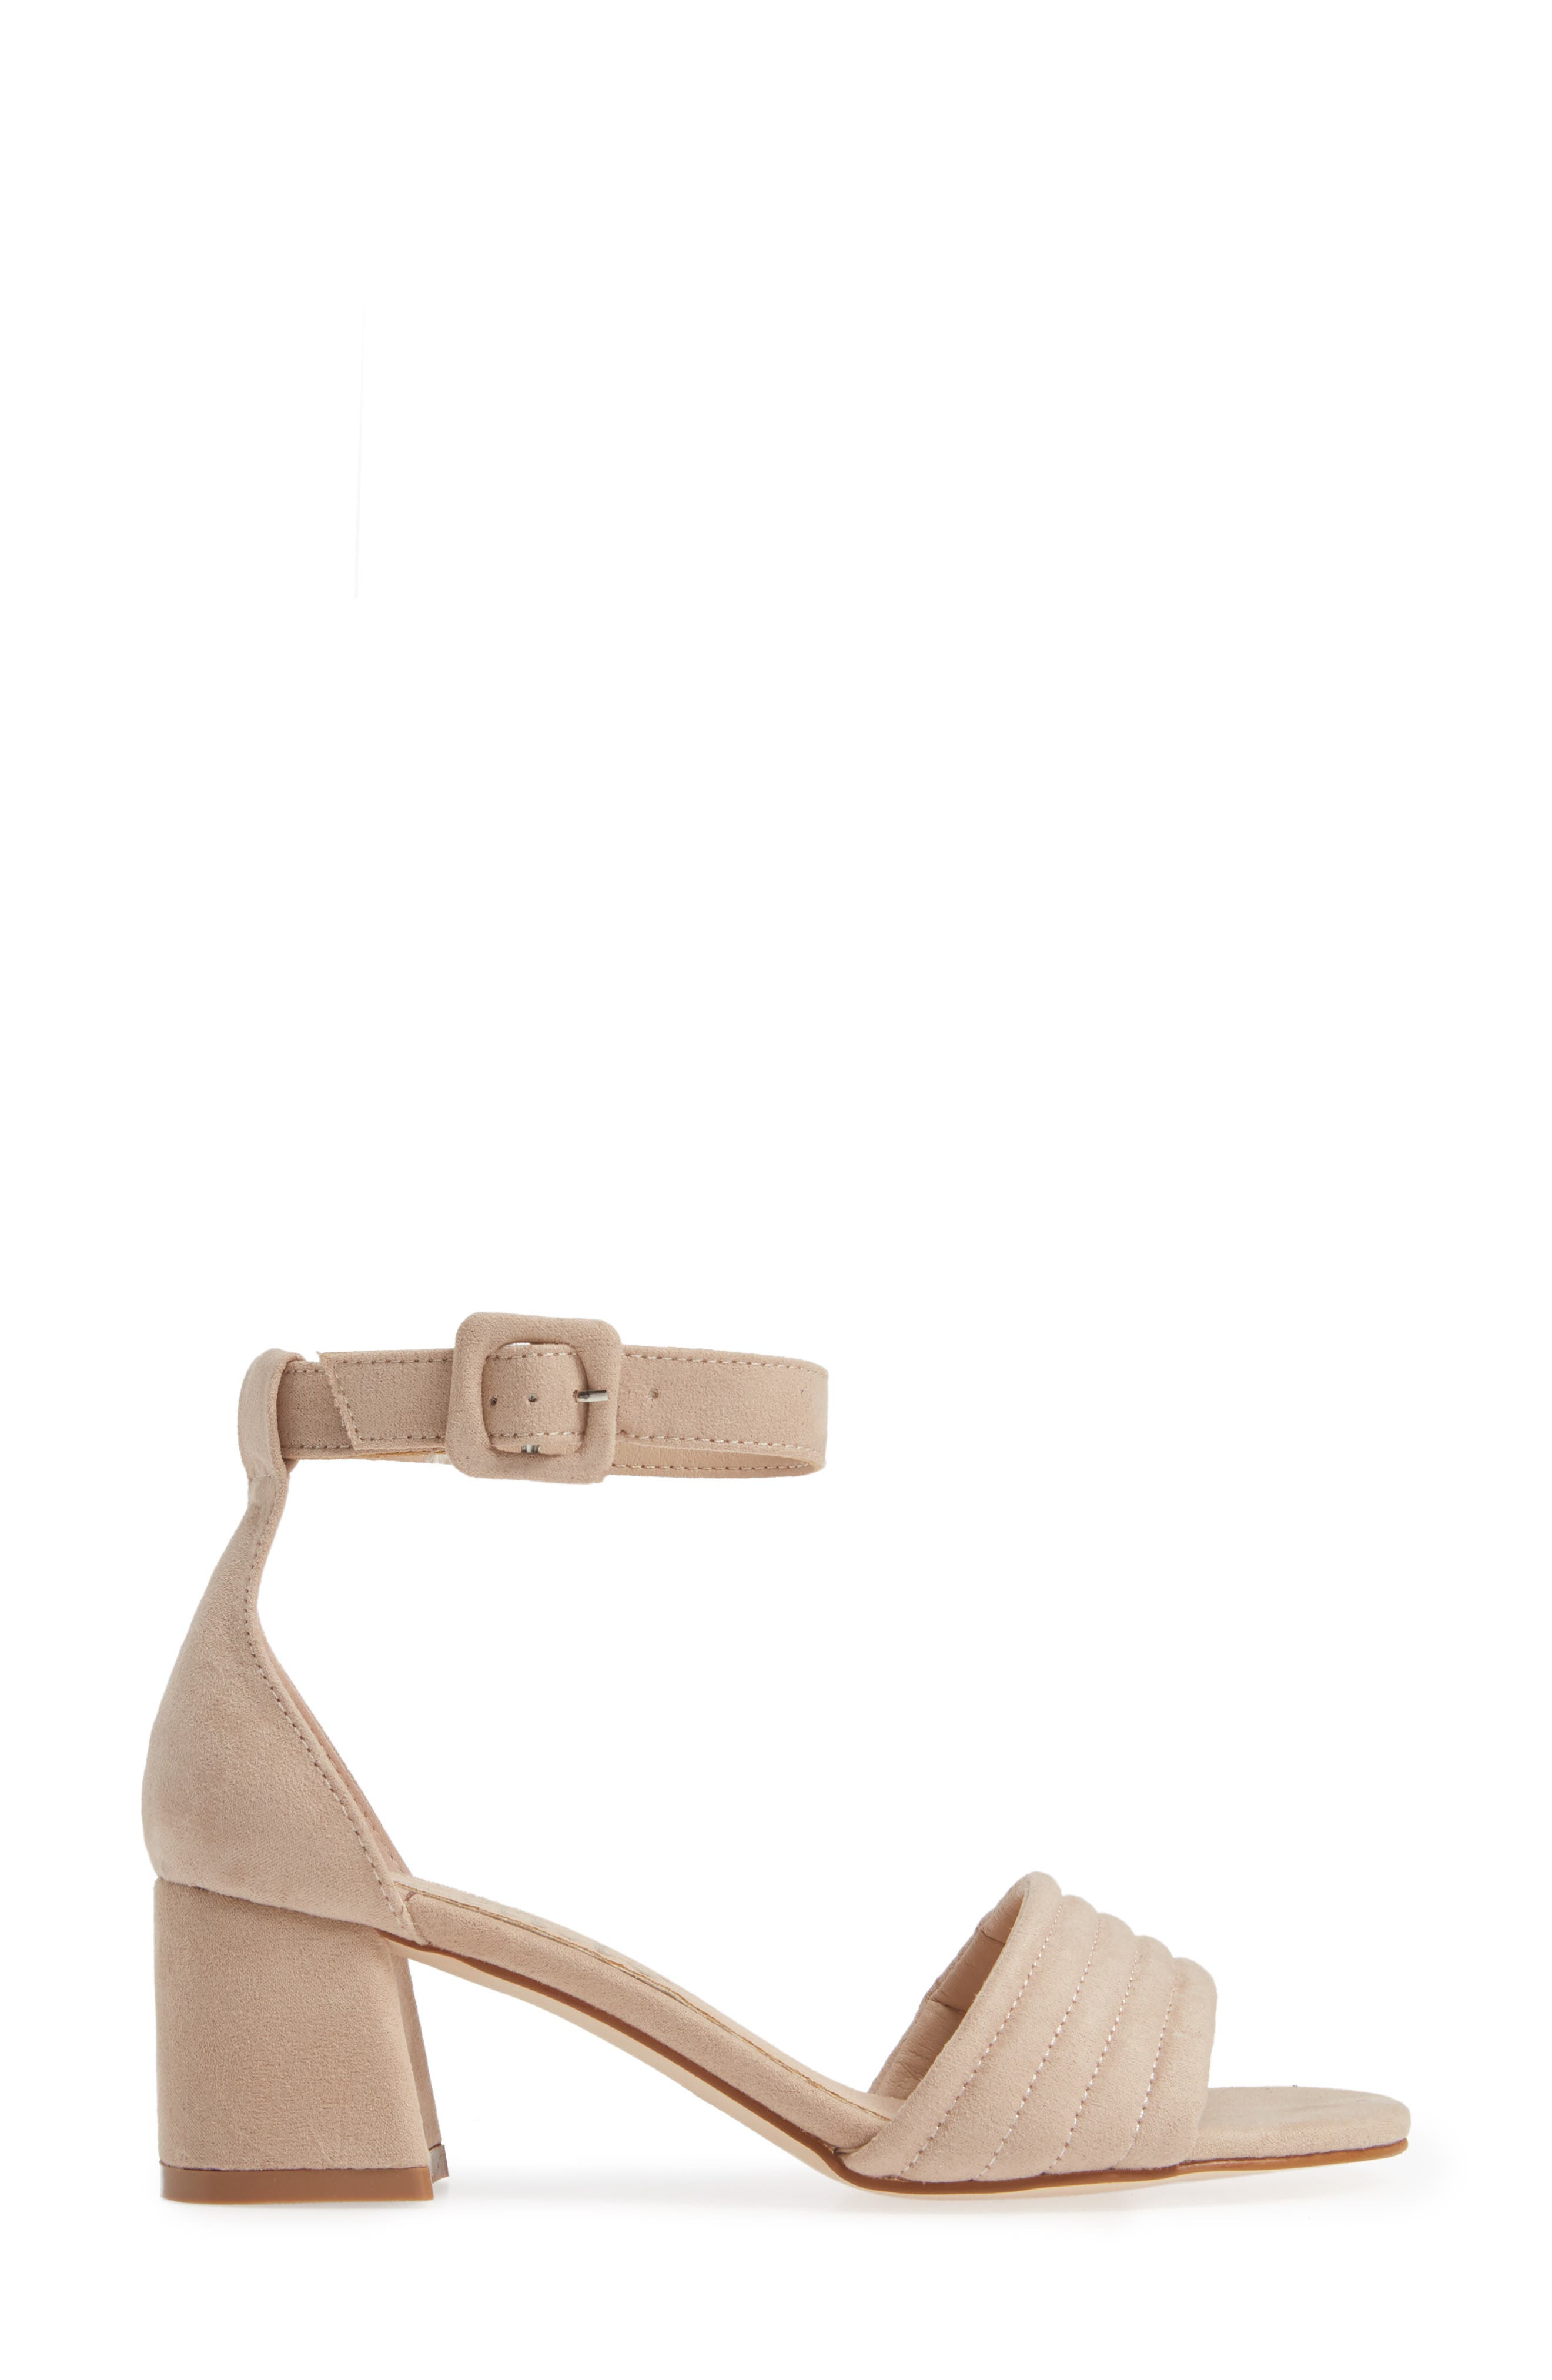 CALLISTO, Puffye Ankle Strap Sandal, Alternate thumbnail 3, color, BLUSH SUEDE SYNTHETIC